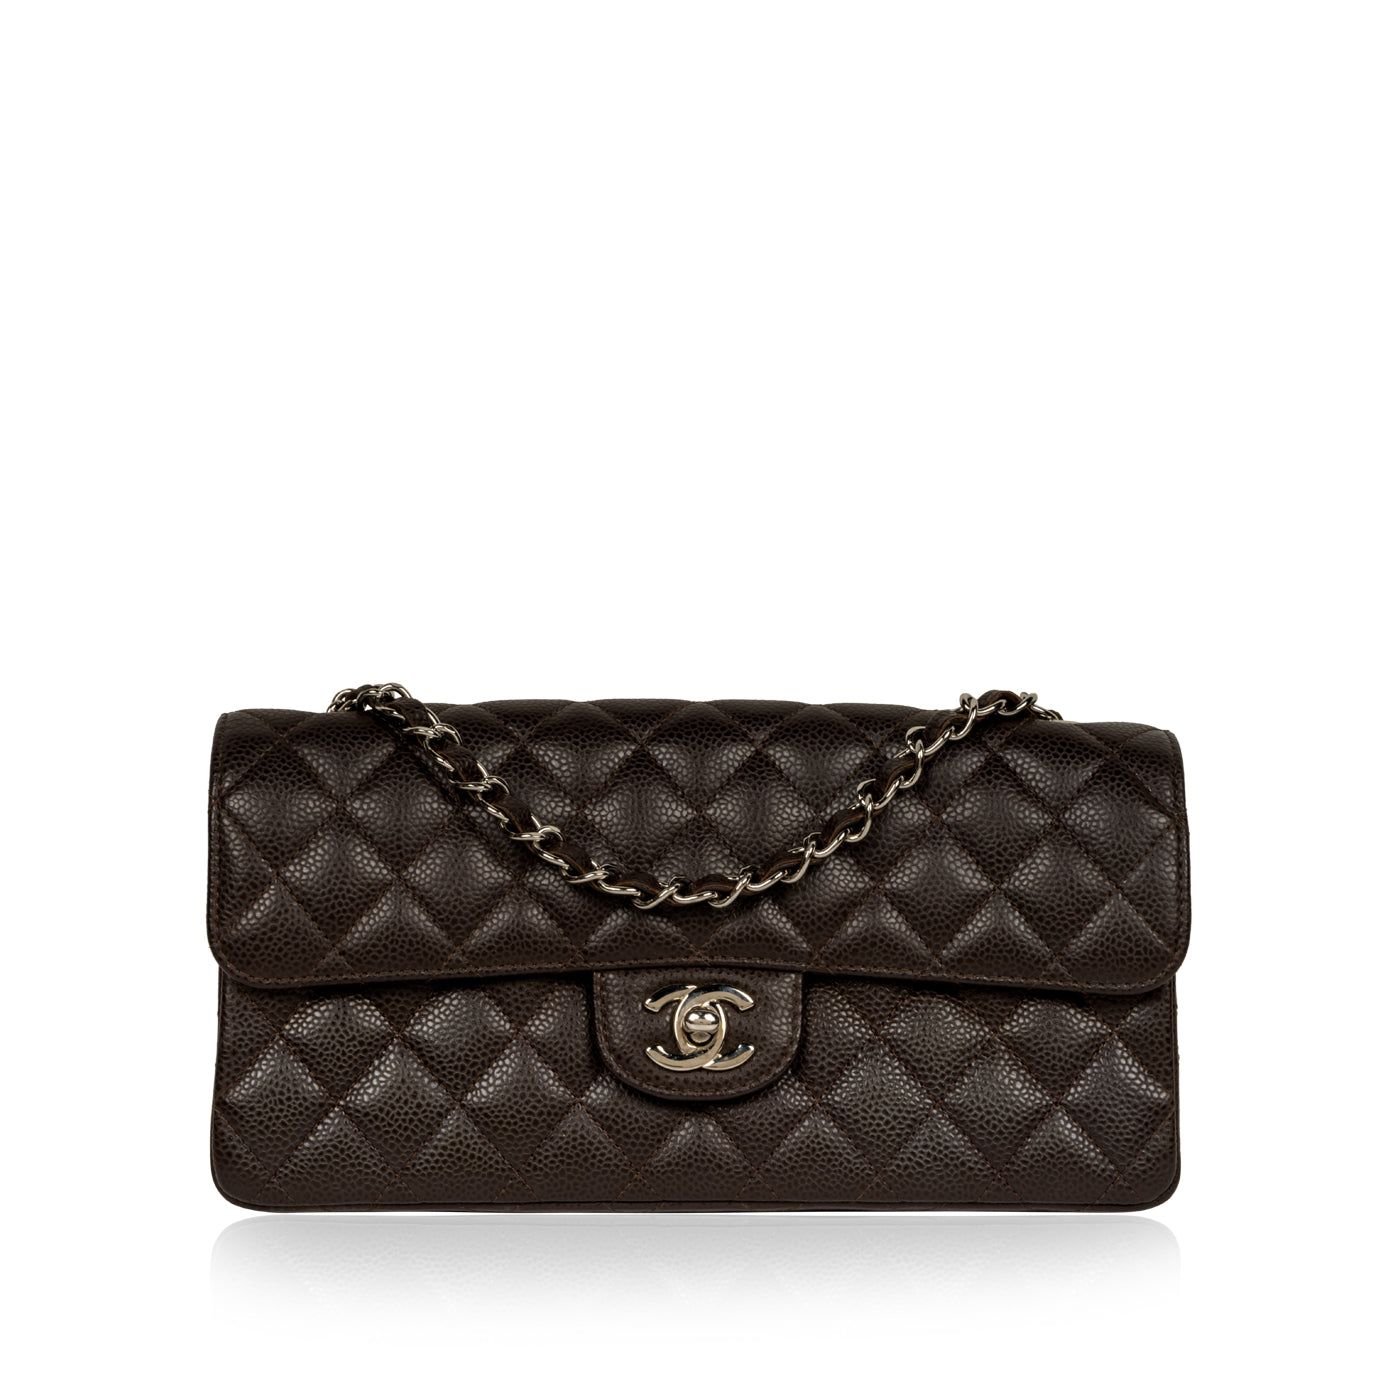 a594298ac1fd Chanel - East West Flap Bag - Brown - Caviar Leather - Pre-Loved ...